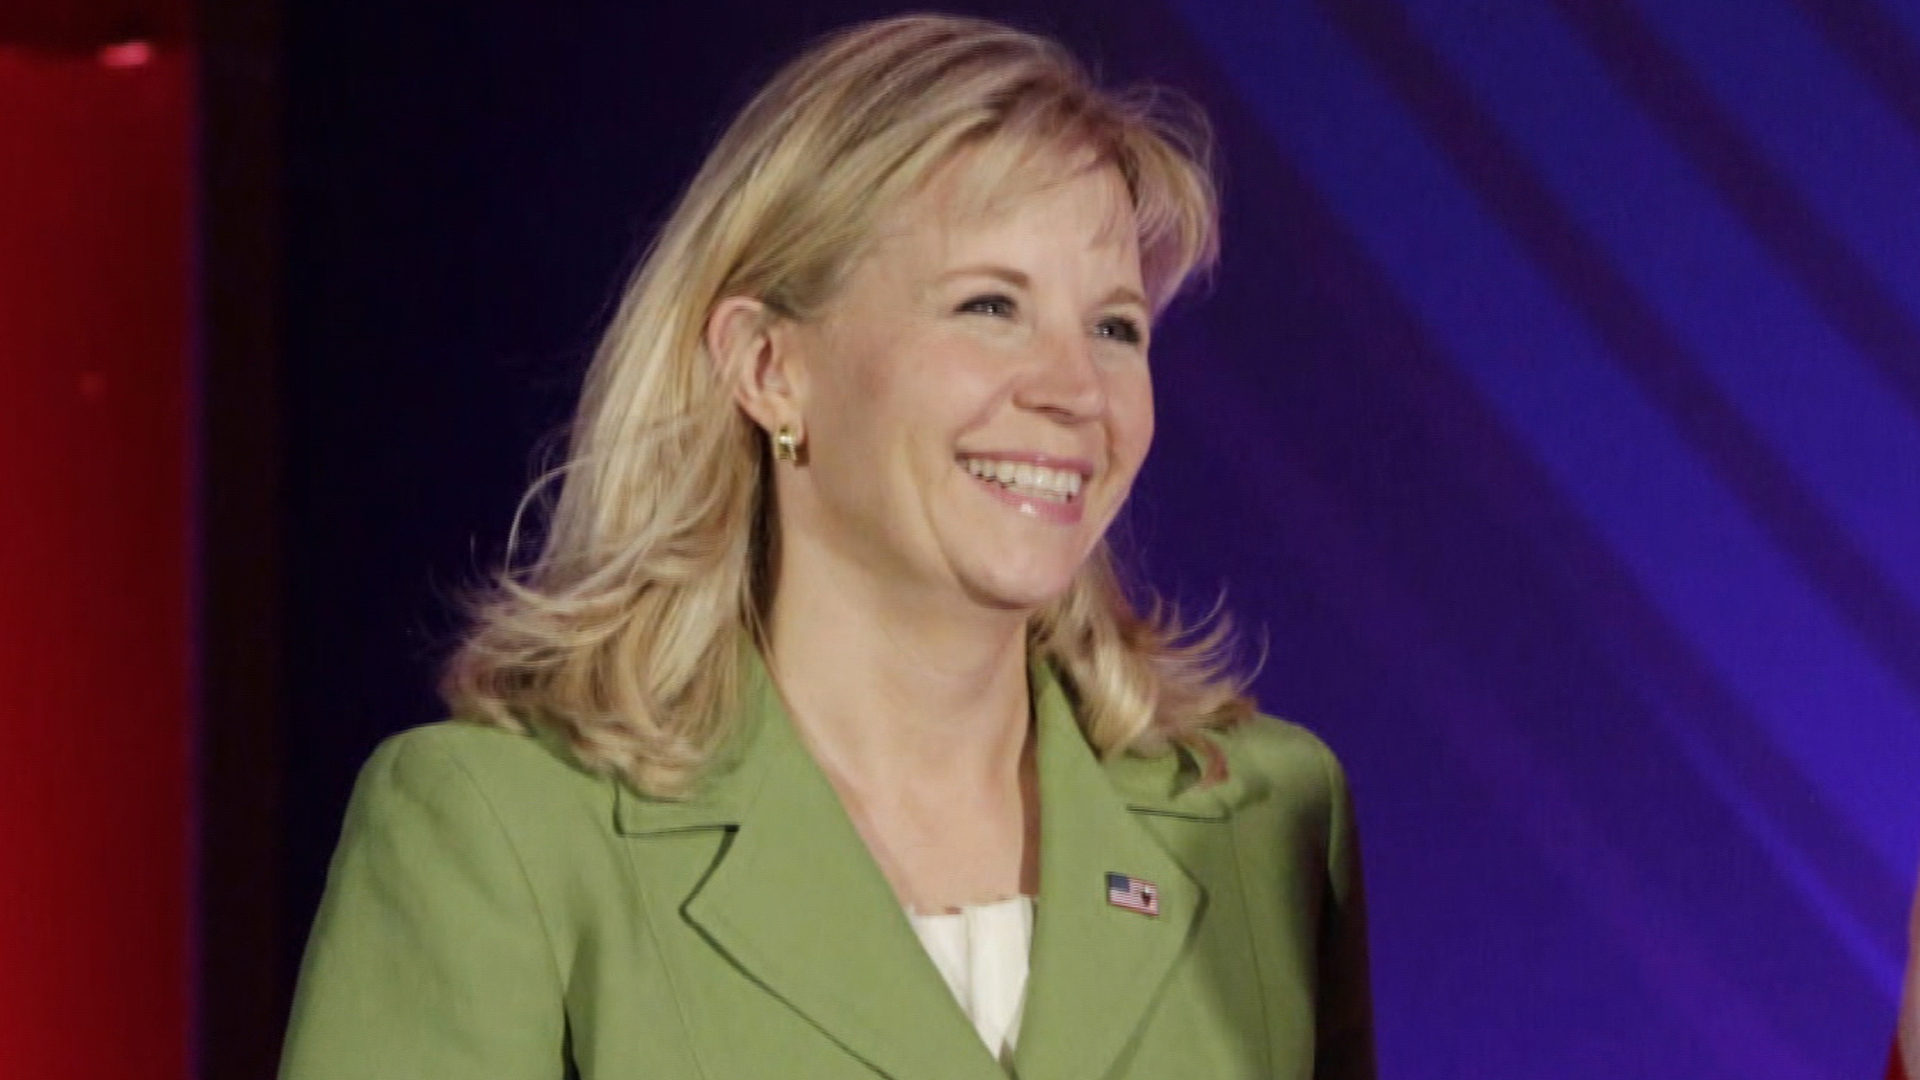 http://media2.s-nbcnews.com/i/MSNBC/Components/Video/130718/tdy_odonn_cheney_130718.jpg